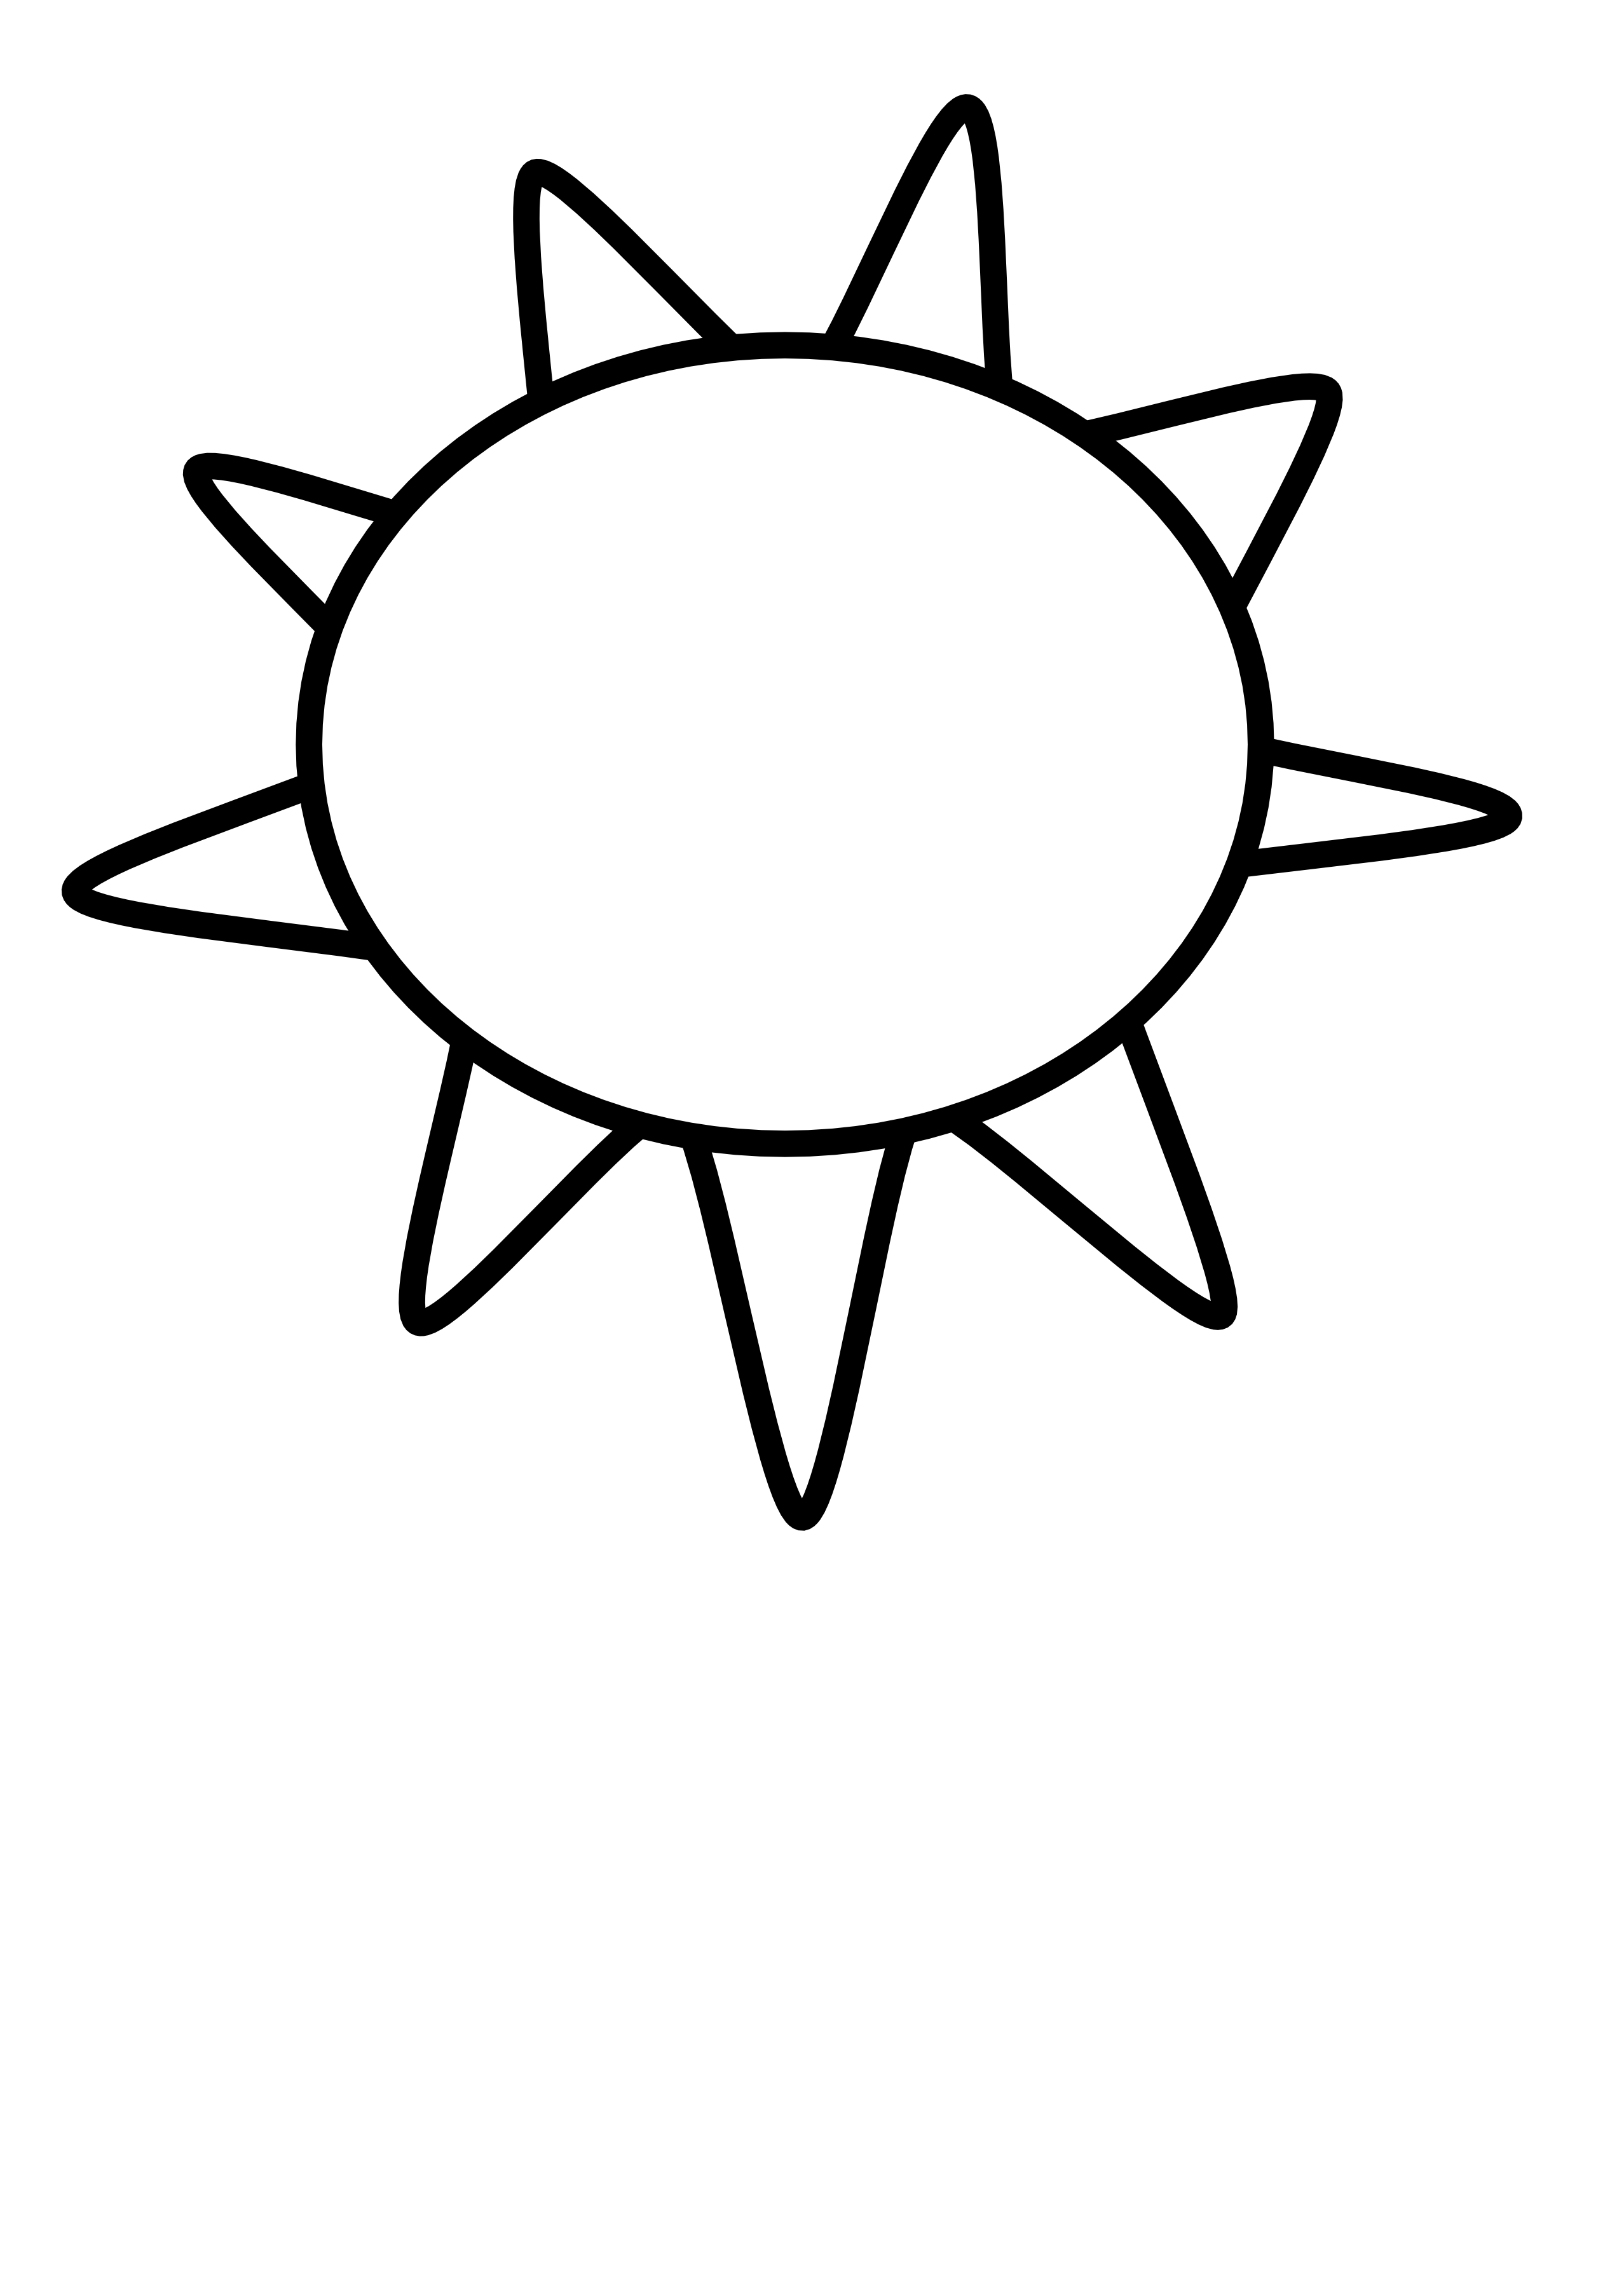 Free Sun Clipart Black And White Pictures Clipartix Clipart Black And White Clip Art Sun Outline